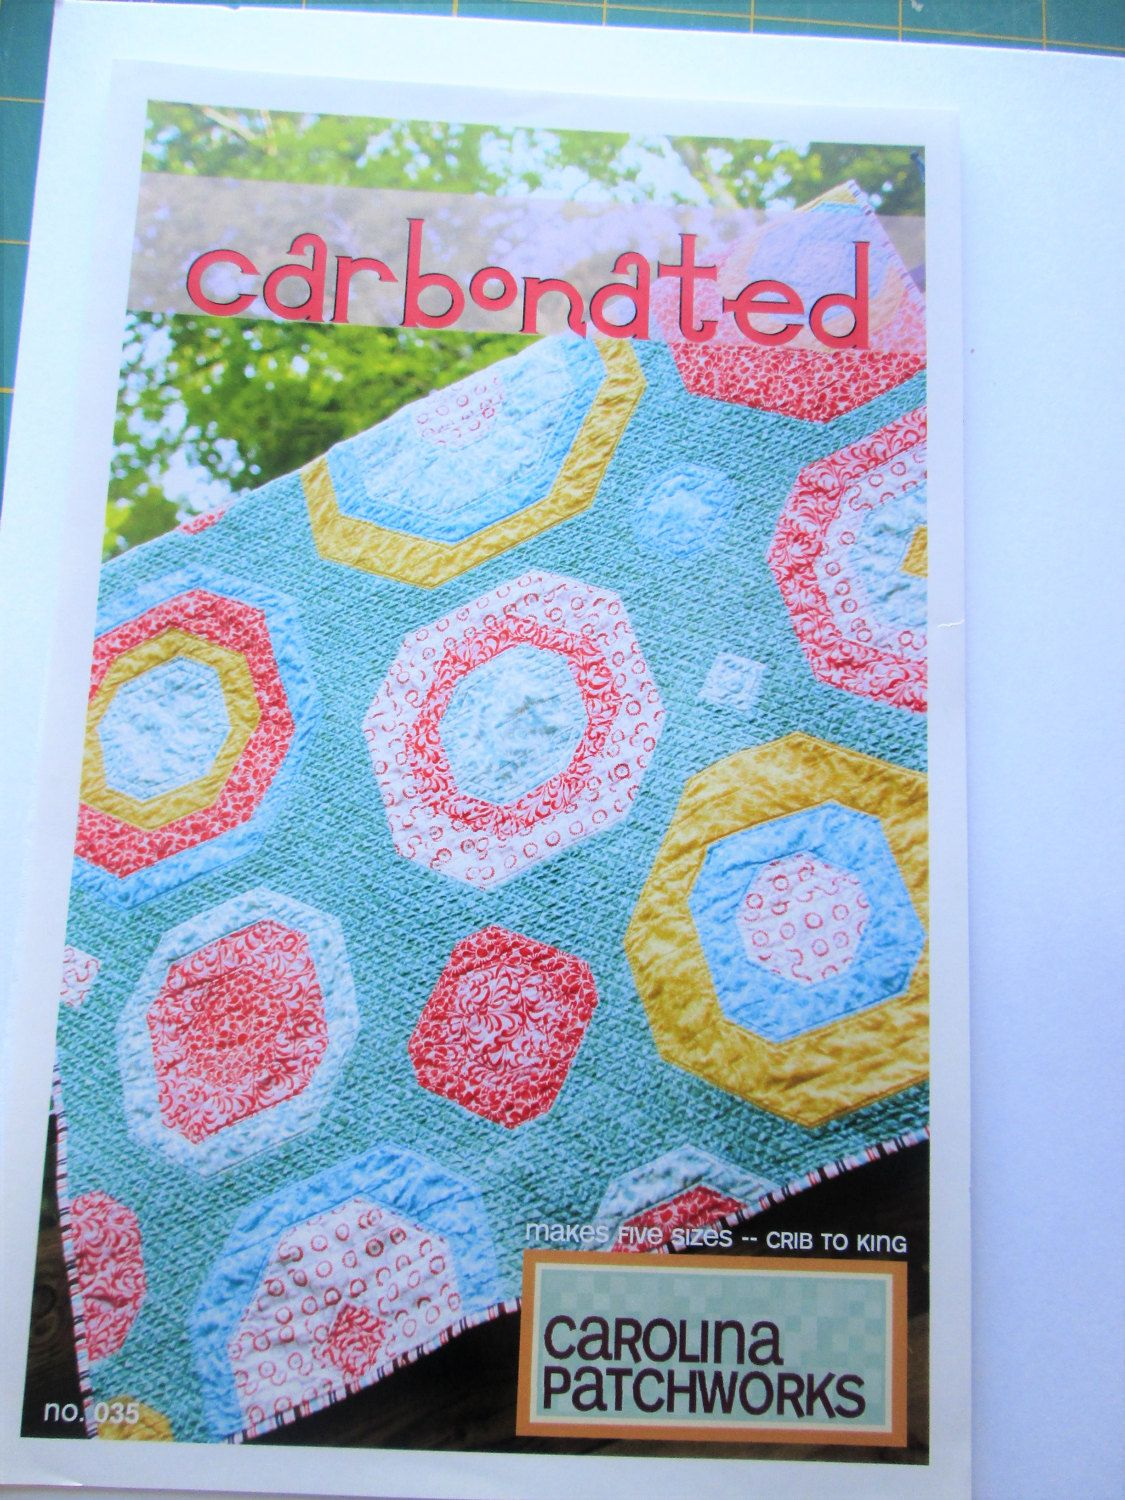 Carbonated Quilt Pattern No. 35- Carolina Patchworks- by Emily Cier by QuiltiliciousFabric on Etsy